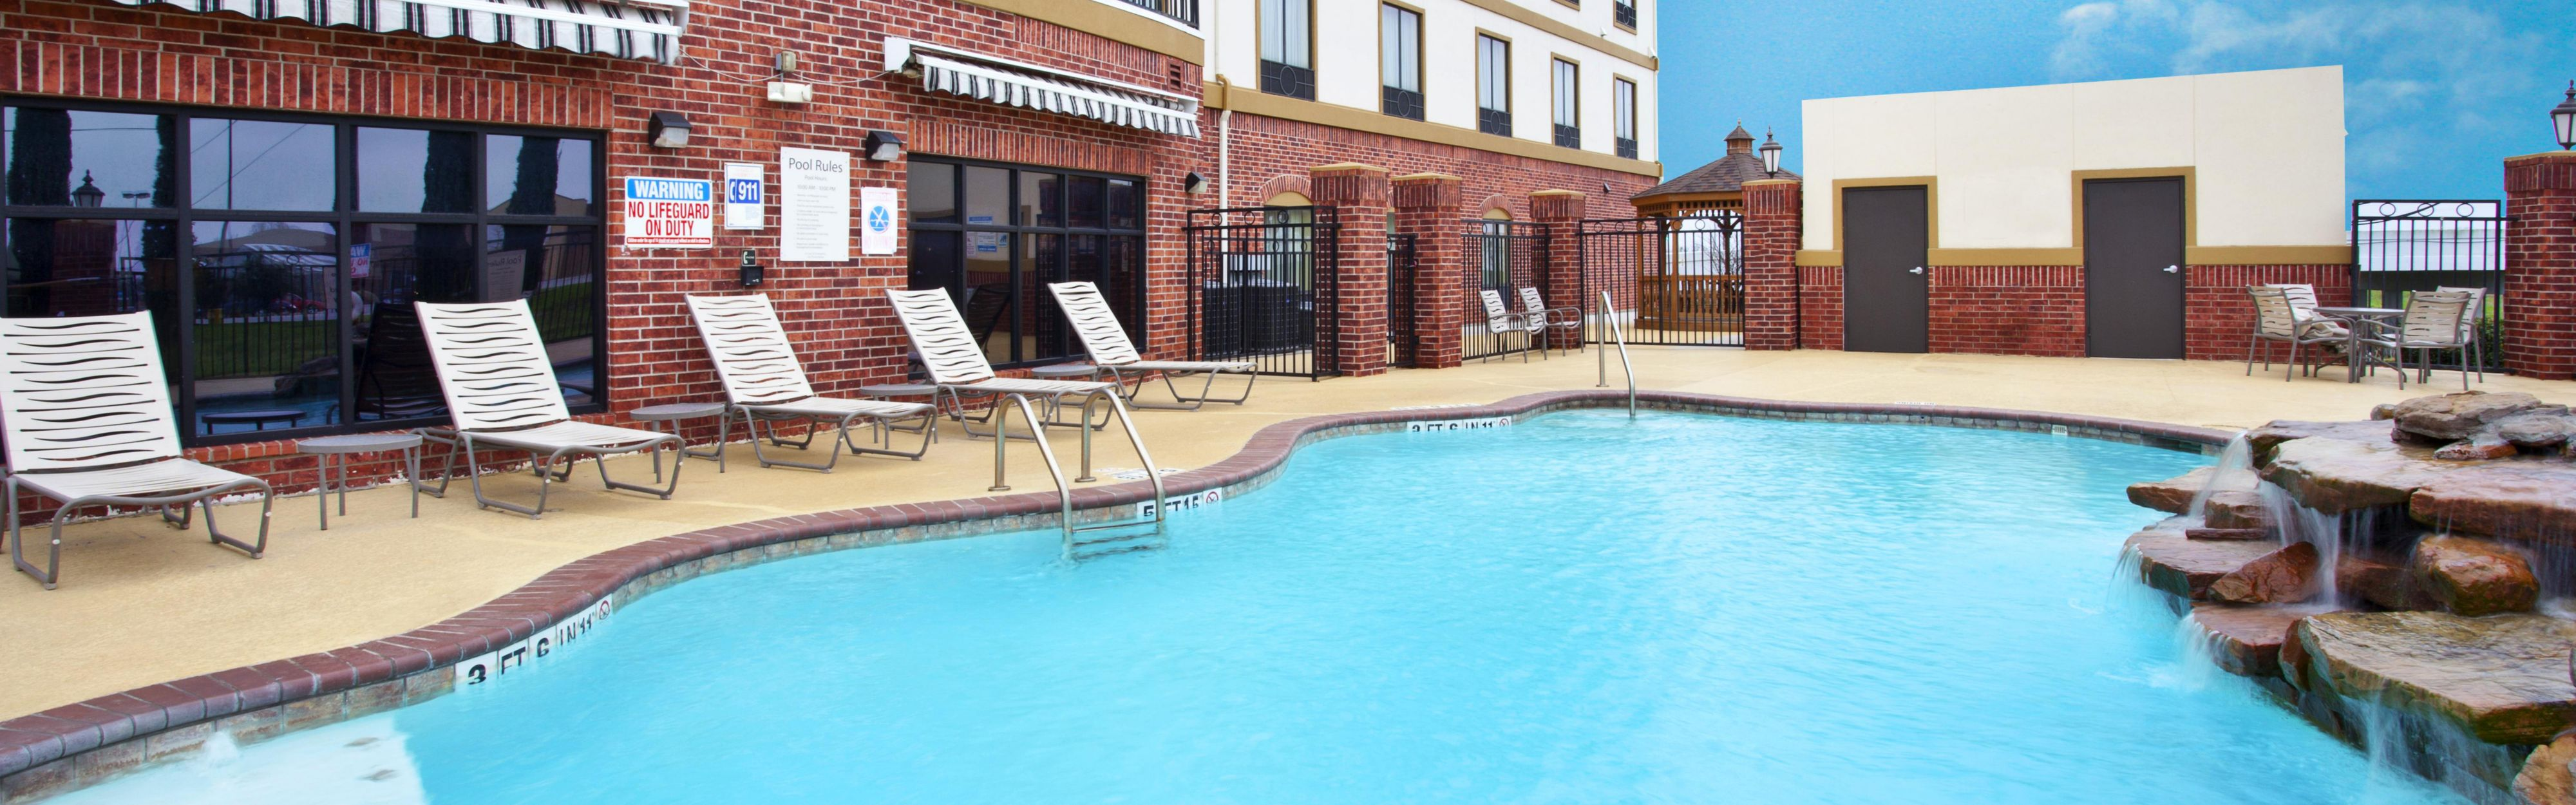 Holiday Inn Express & Suites Sealy image 2